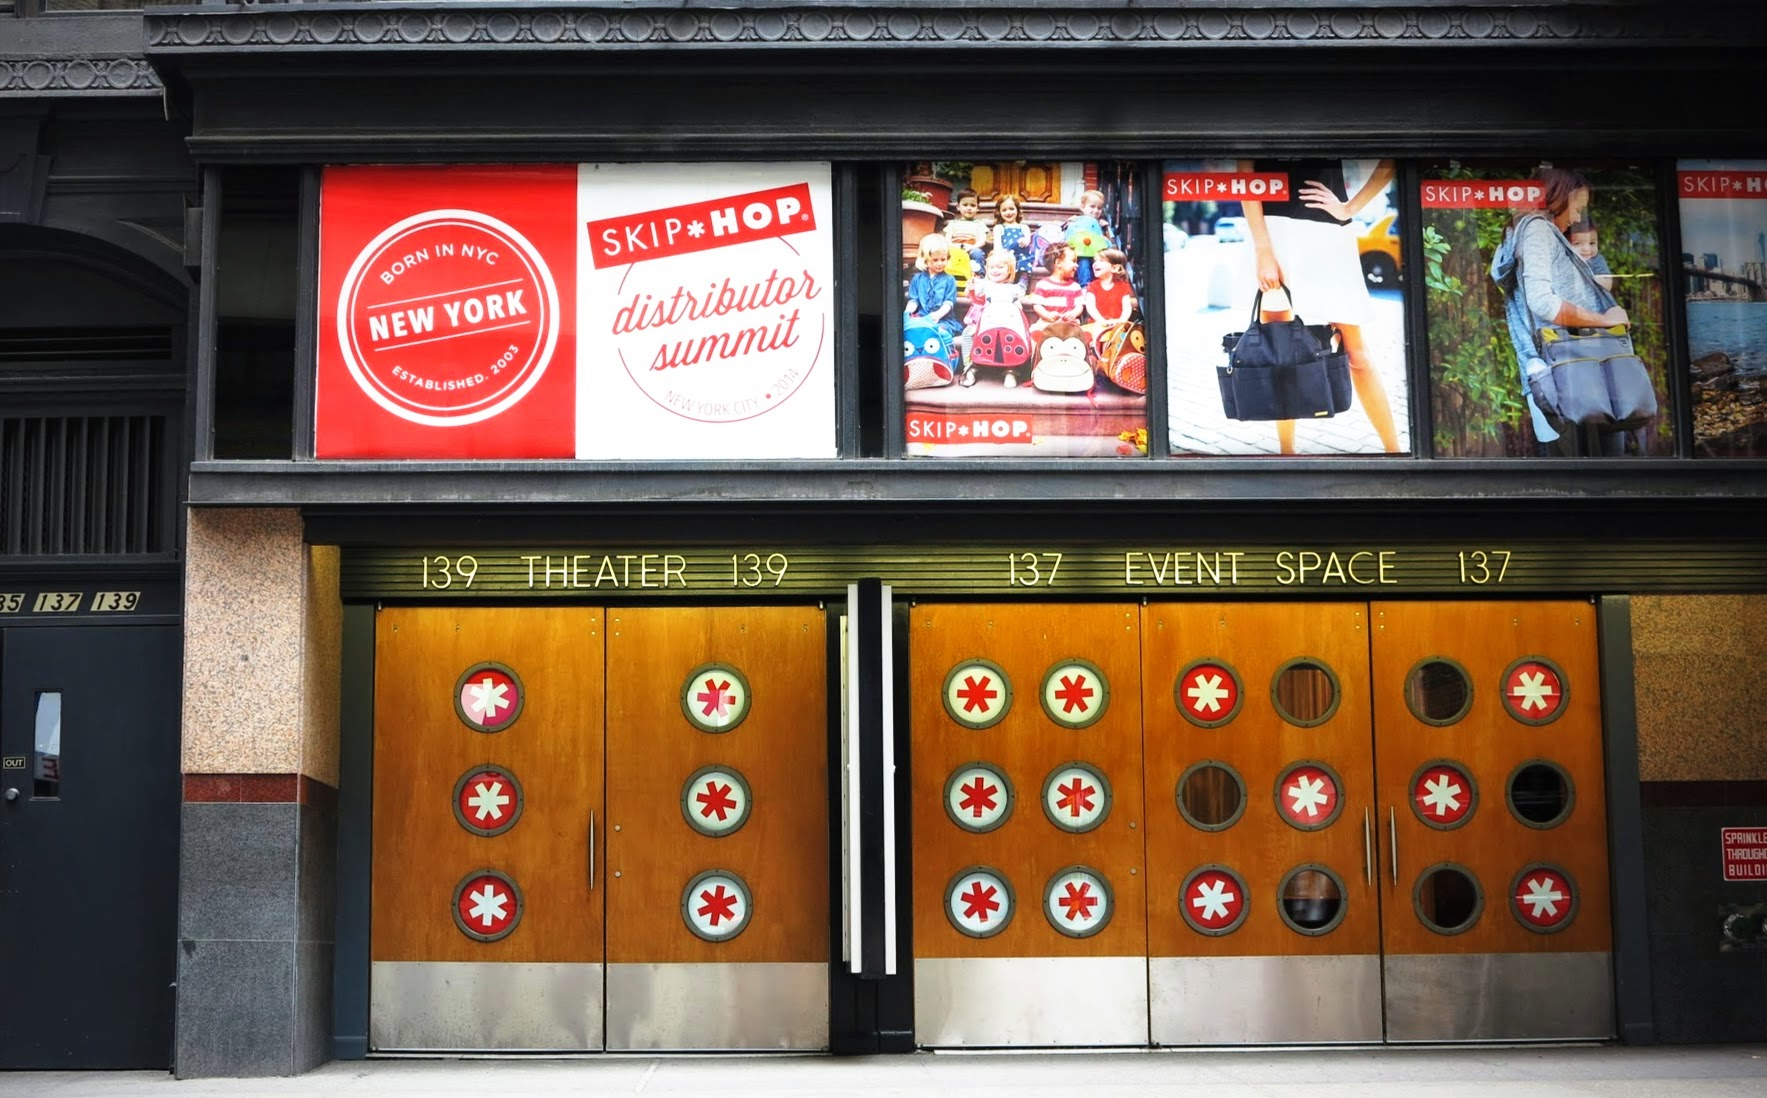 Entrance signage examples